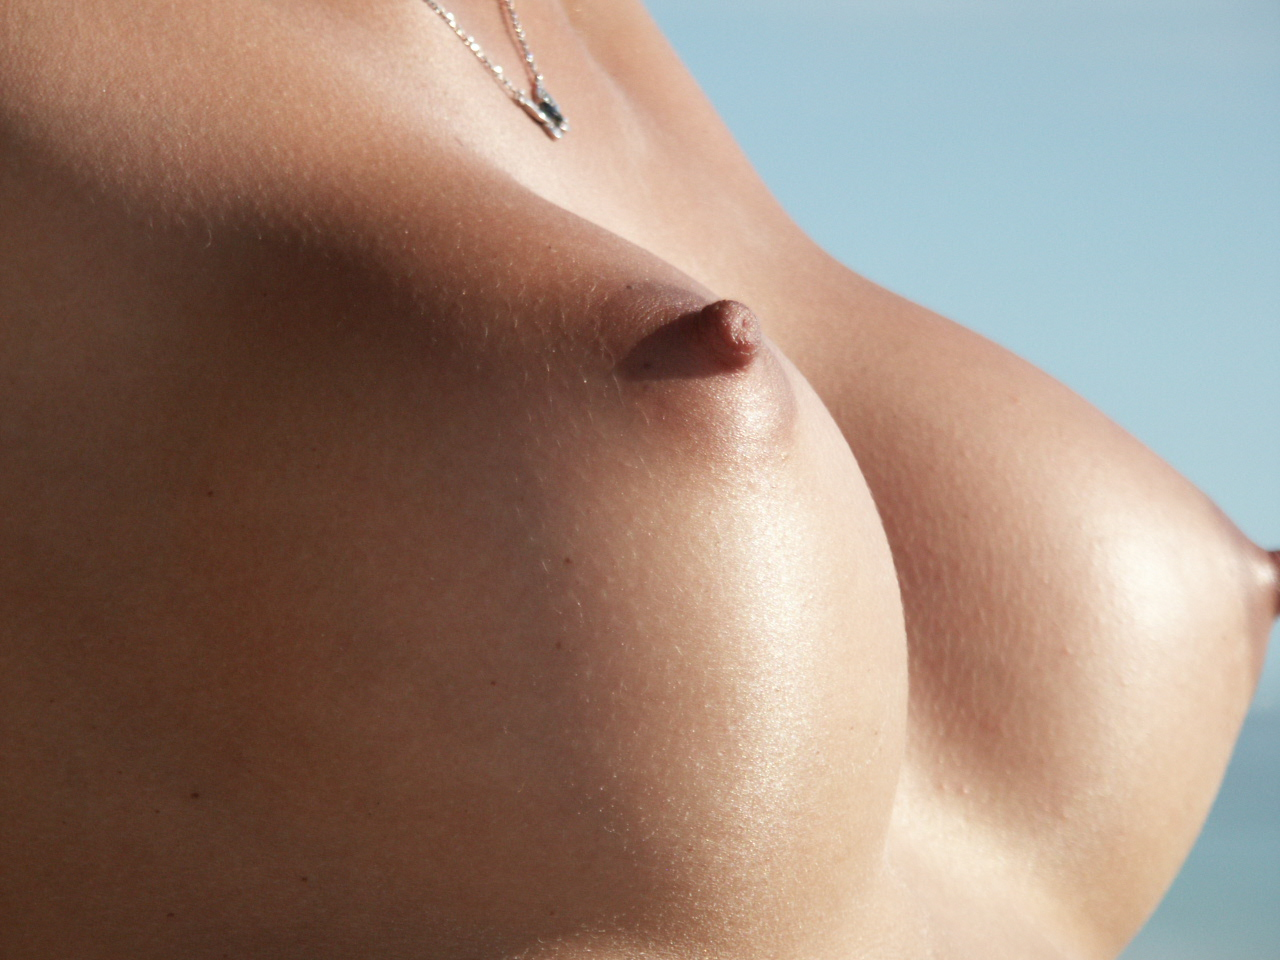 picture of nipples close ups